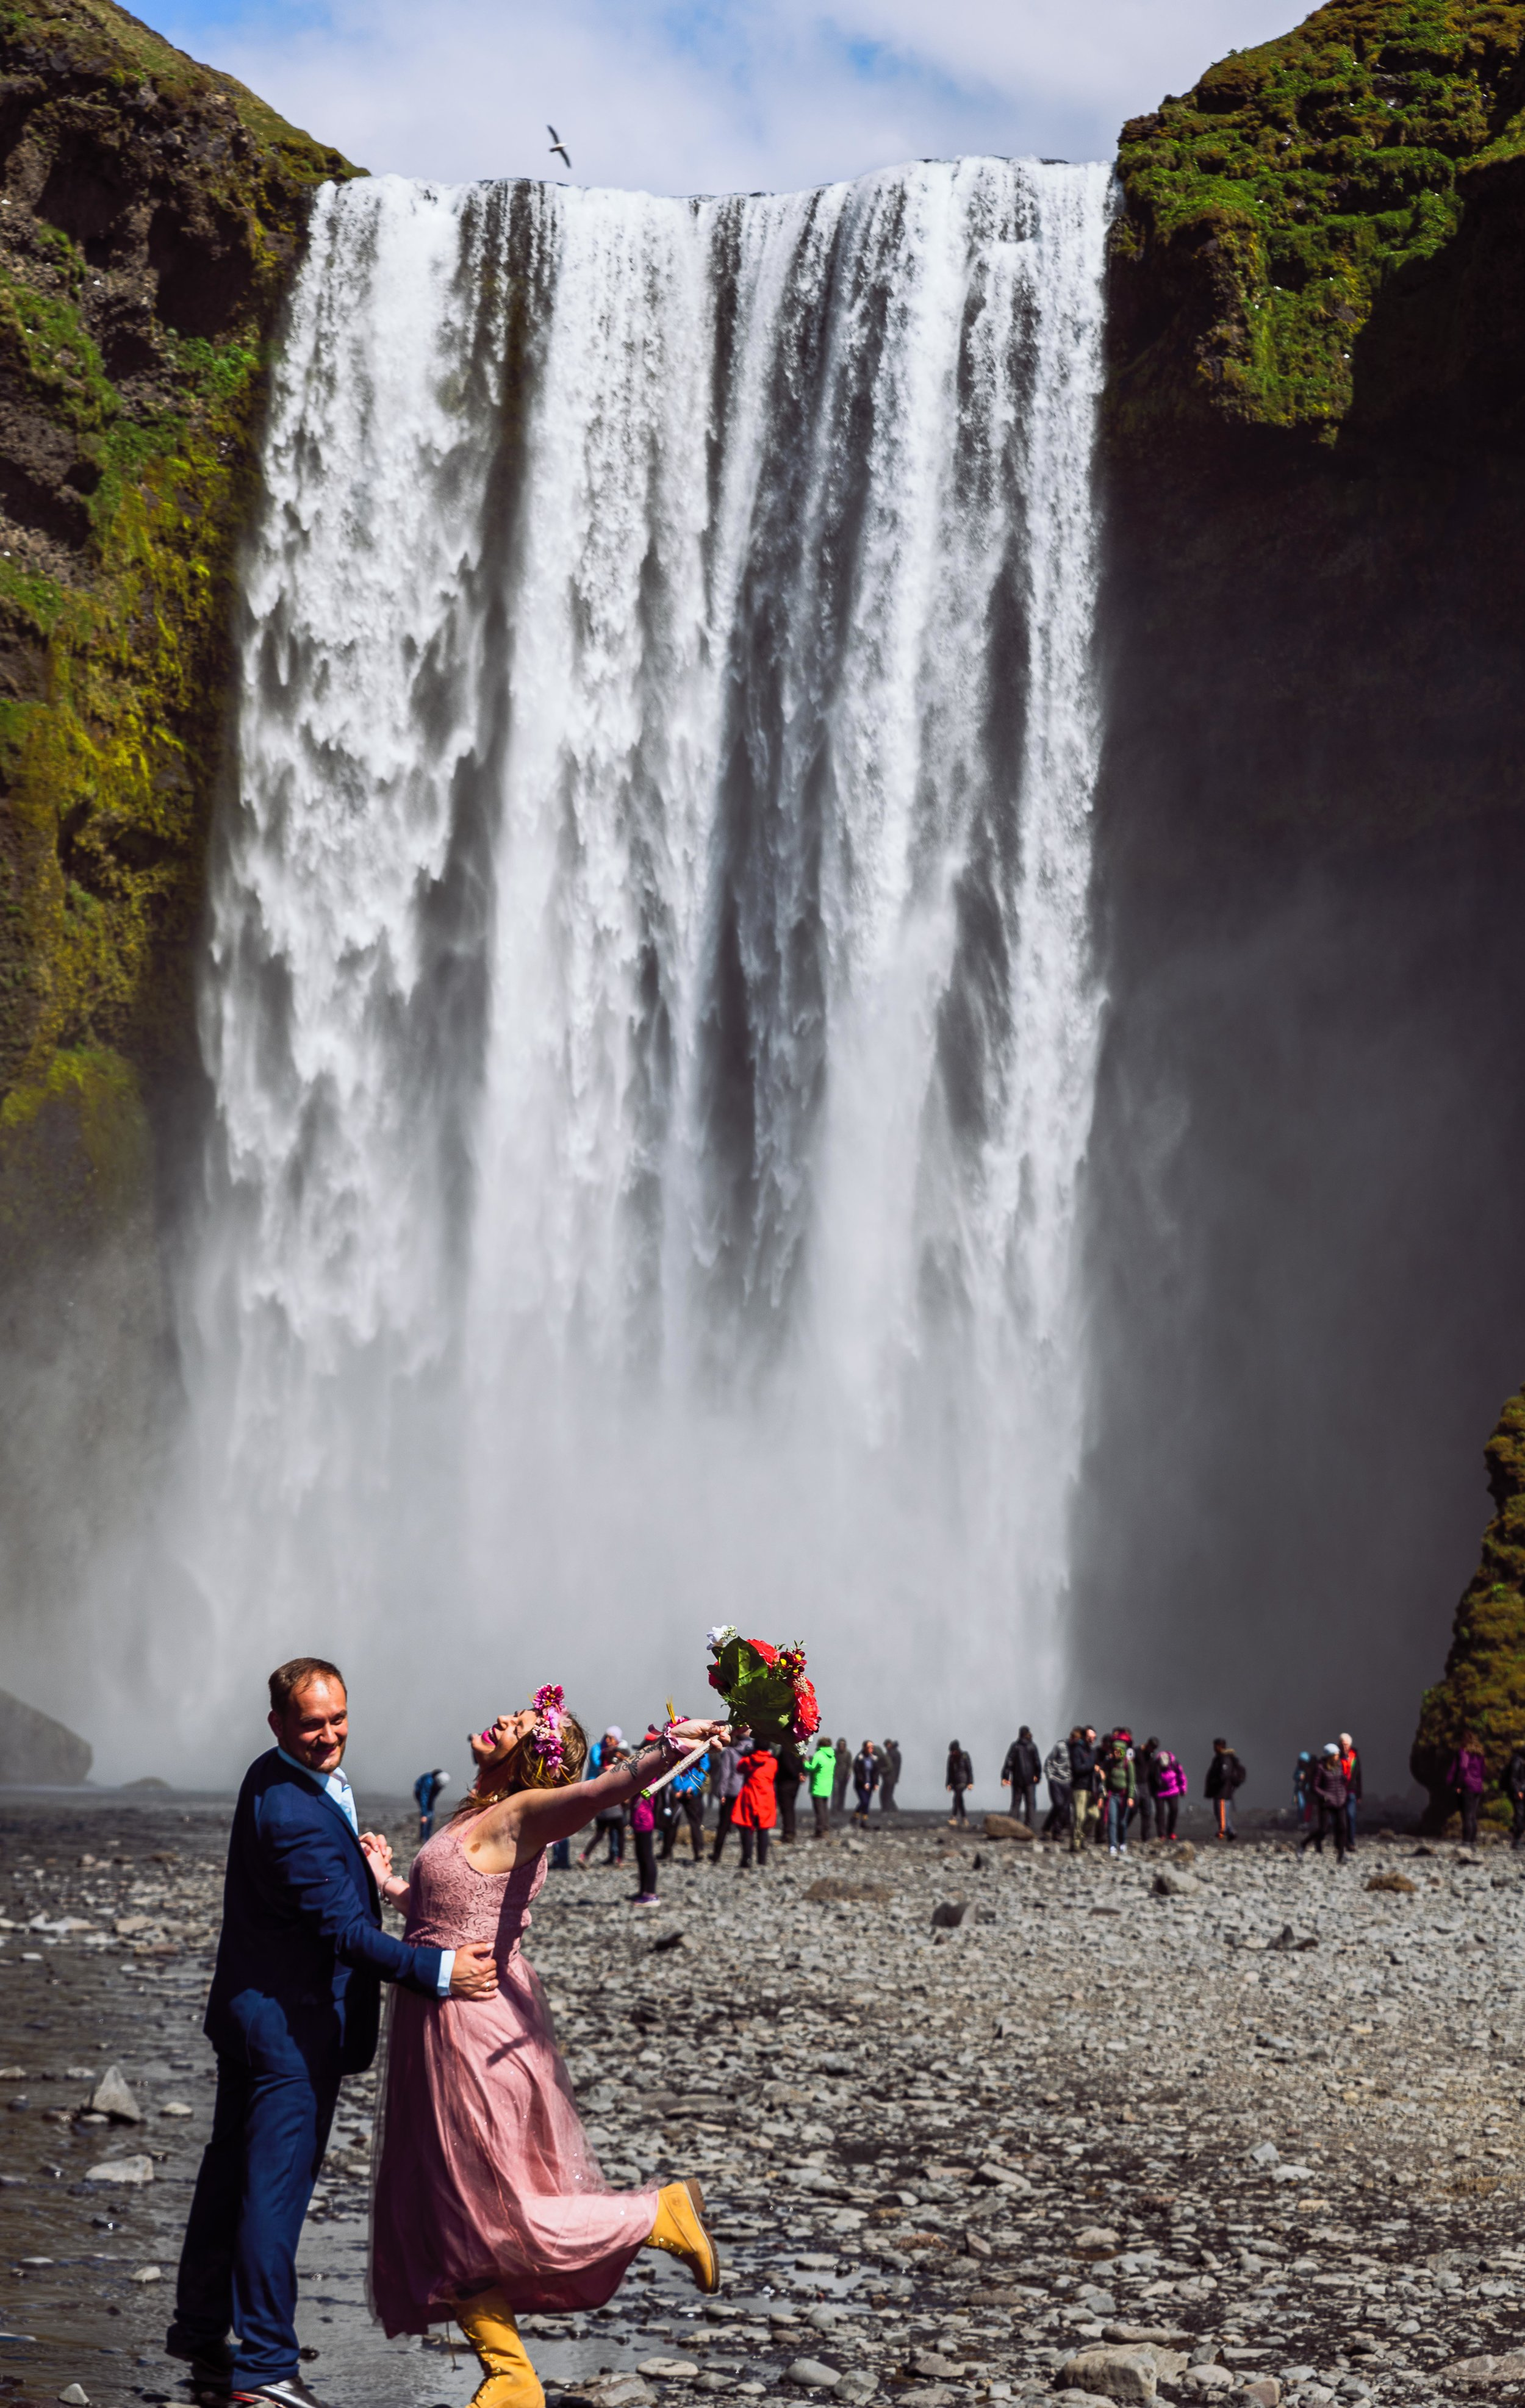 A couple enjoying their exciting day at Skogafoss